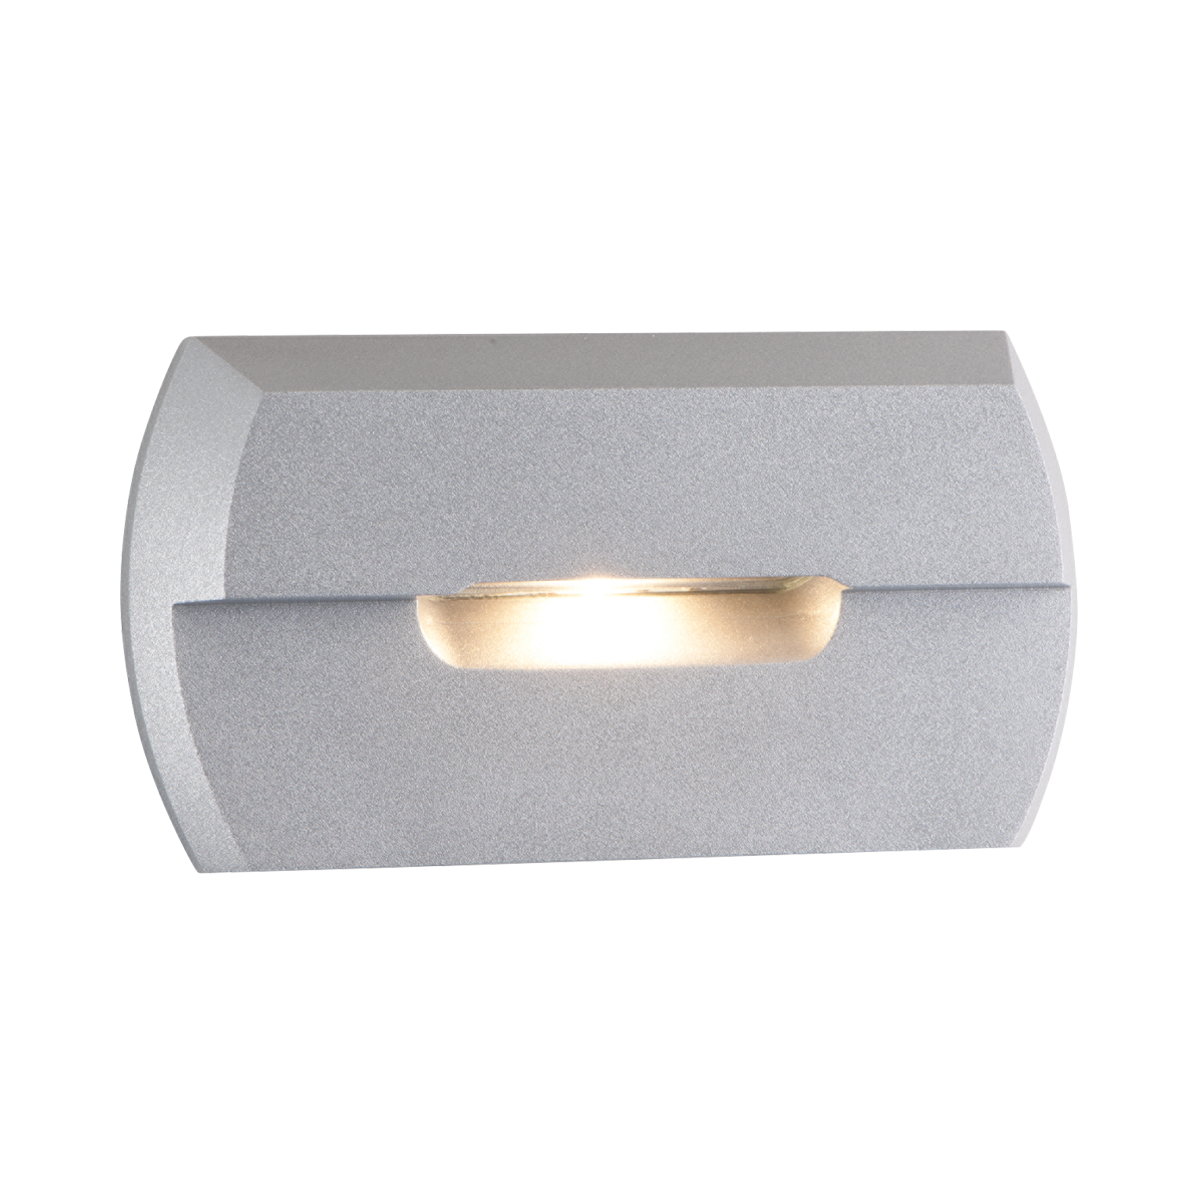 "2-1 - 2"" x 4-3 - 4"" Amber LED Step Light, Silver Metallic Finish"